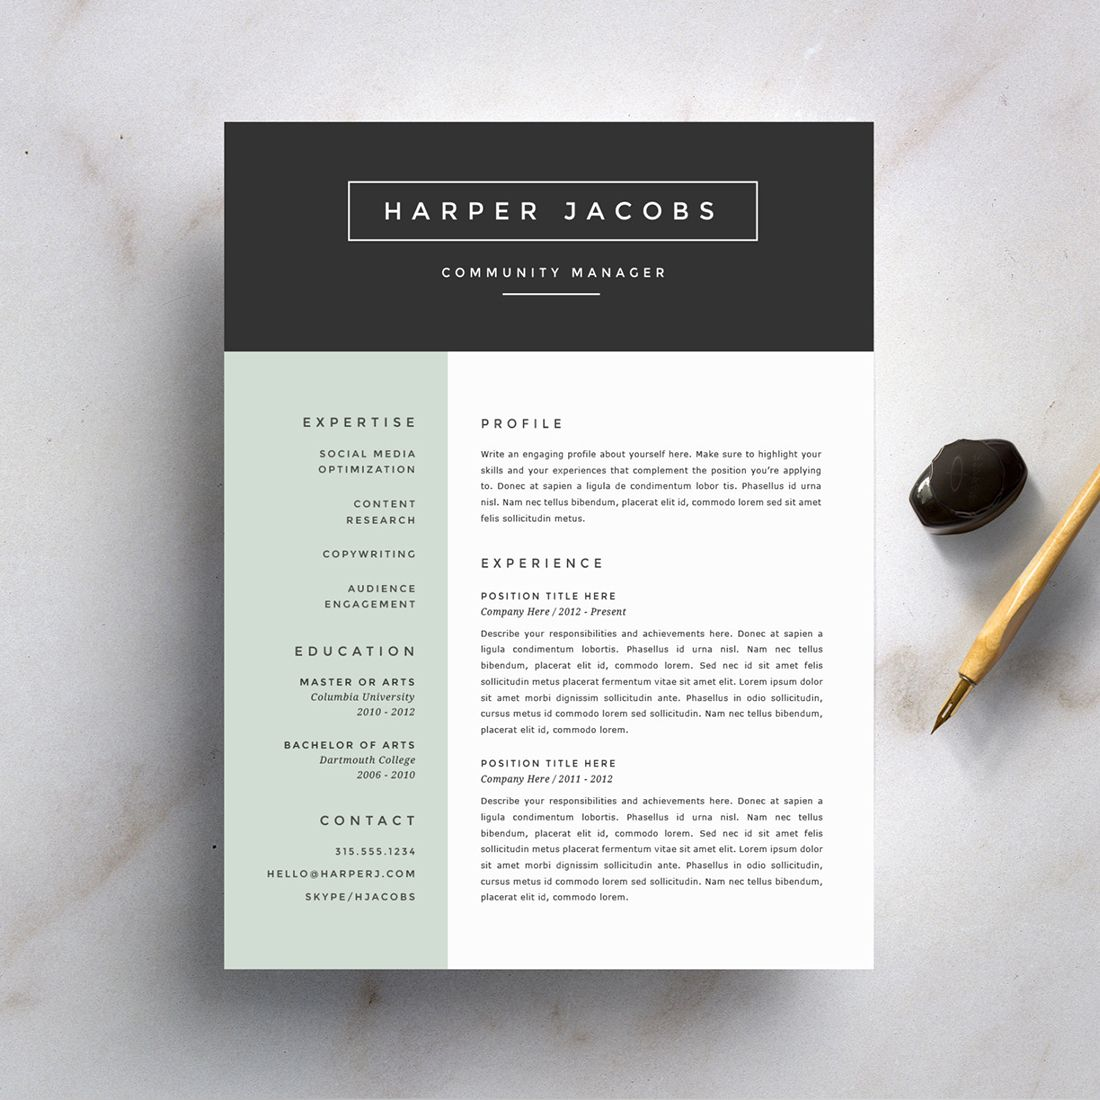 These Are the Best + Worst Fonts to Use on Your Resume